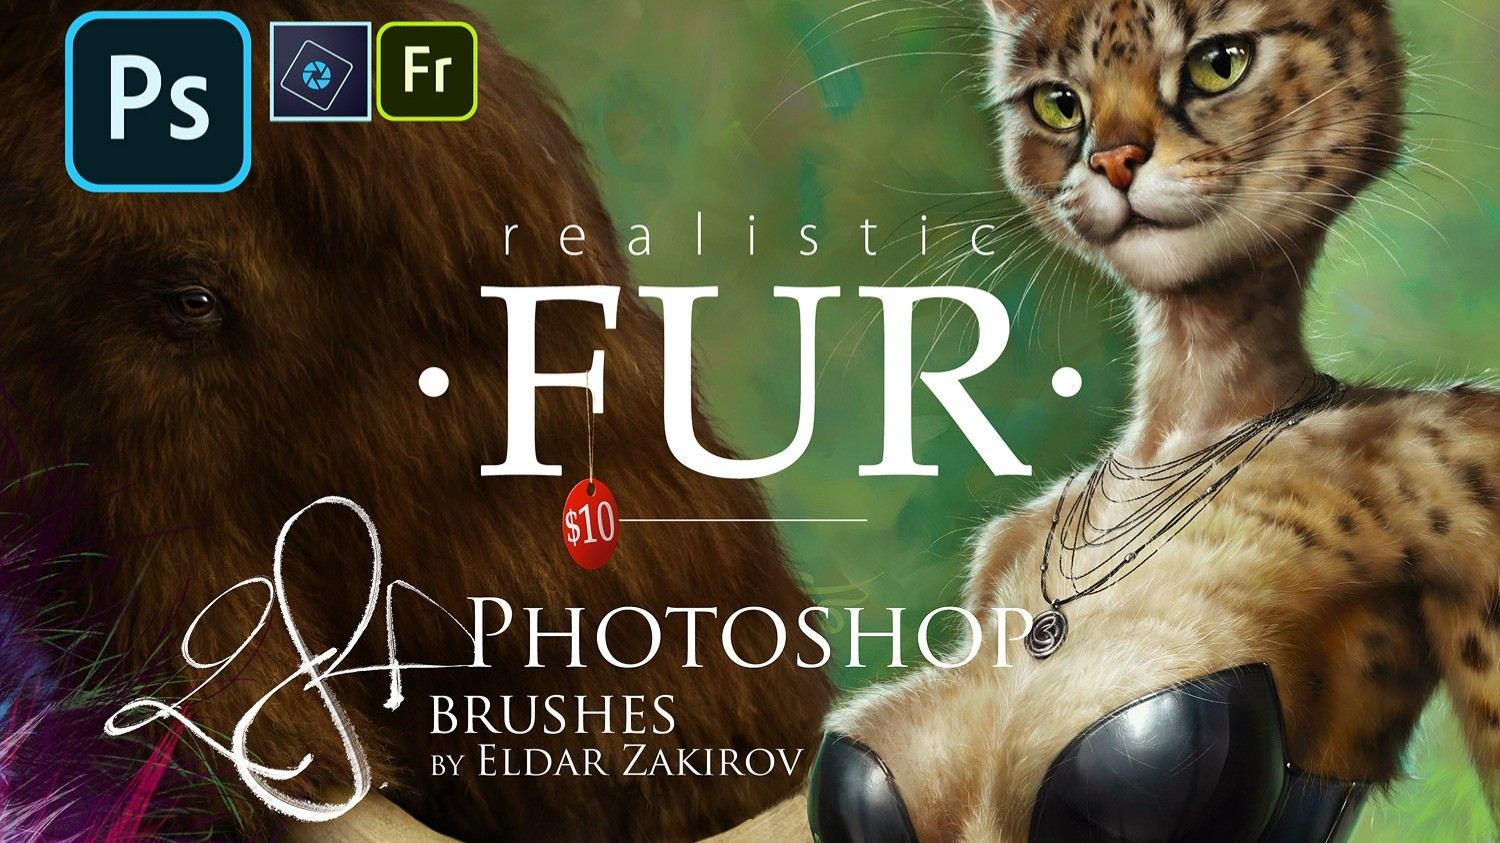 AppSumo Deal for 28 Realistic FUR Brushes for Adobe Photoshop